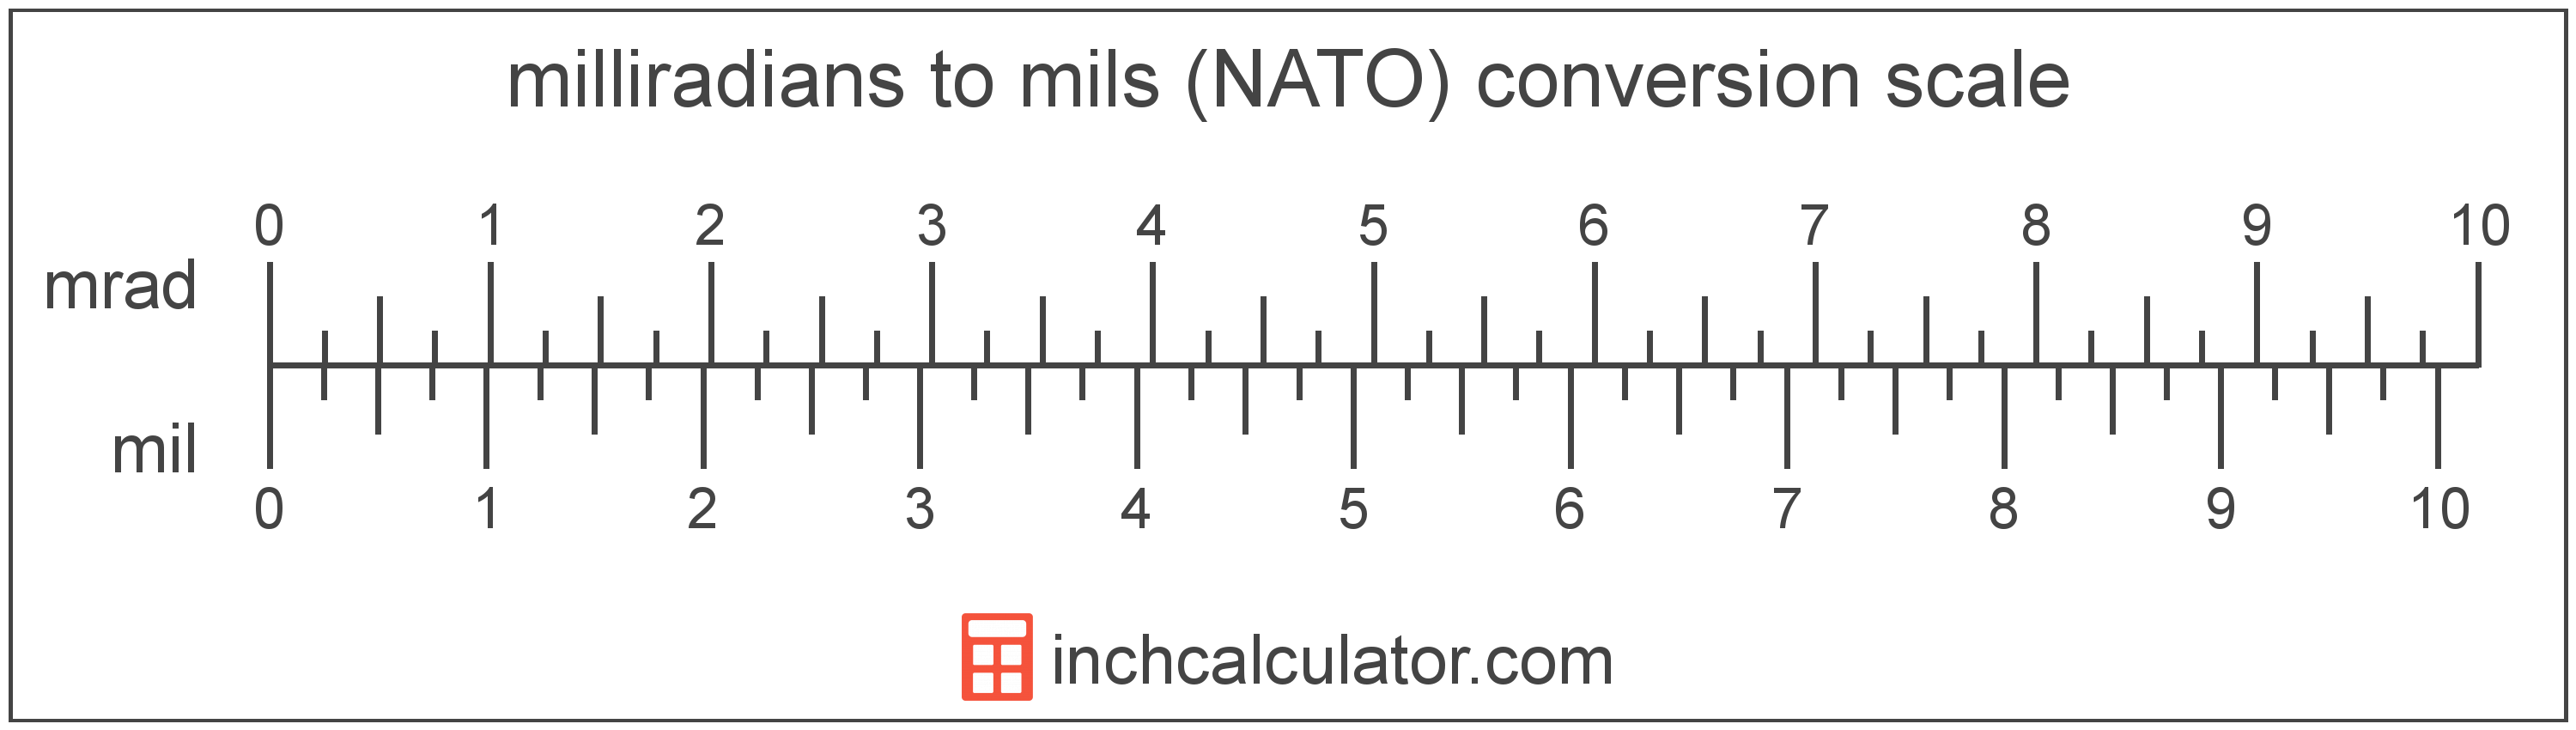 conversion scale showing milliradians and equivalent mils (NATO) angle values